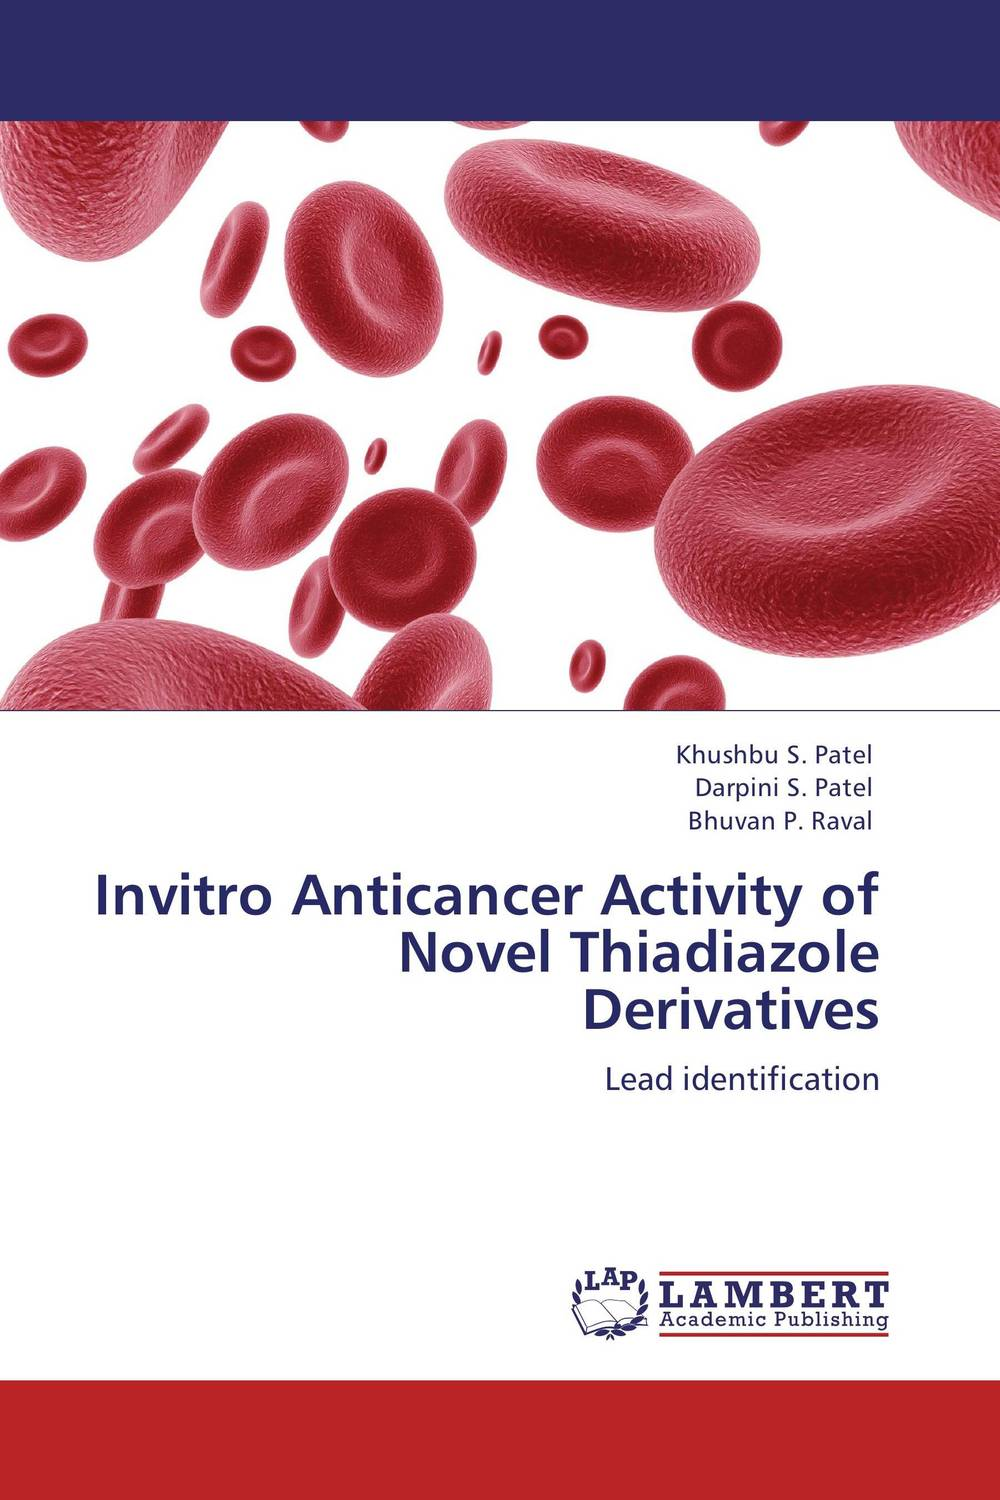 Invitro Anticancer Activity of Novel Thiadiazole Derivatives analysis of tp53 and promoter hypermethylation of mgmt in lung cancer